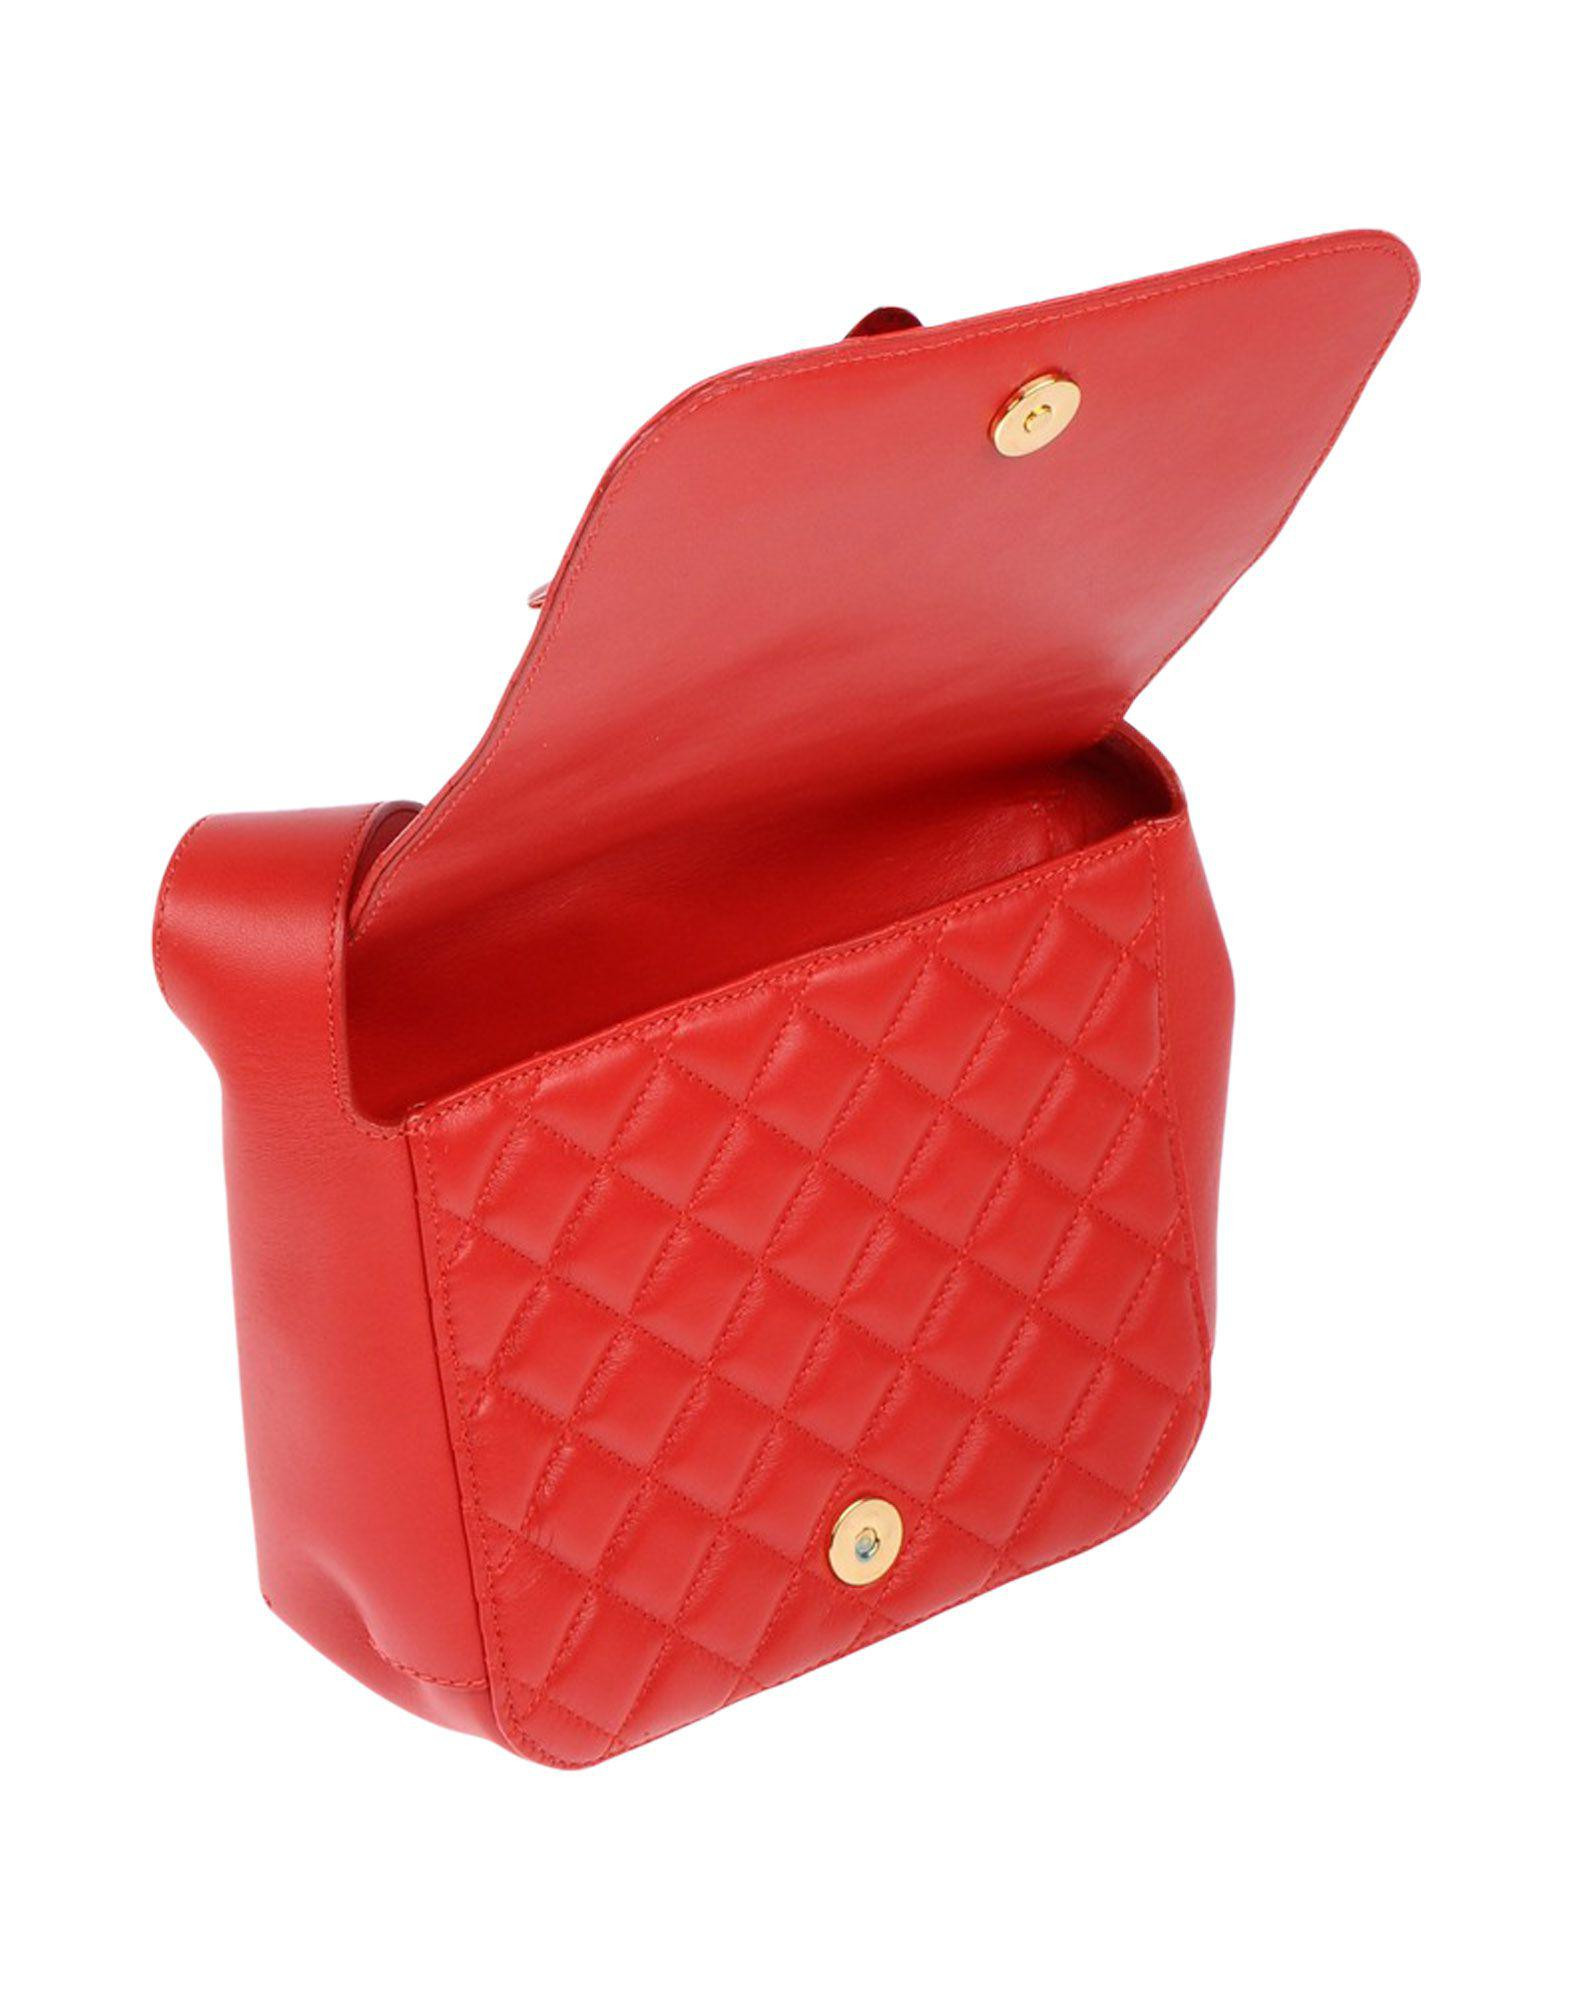 Boutique Moschino Leather Cross-body Bag in Red